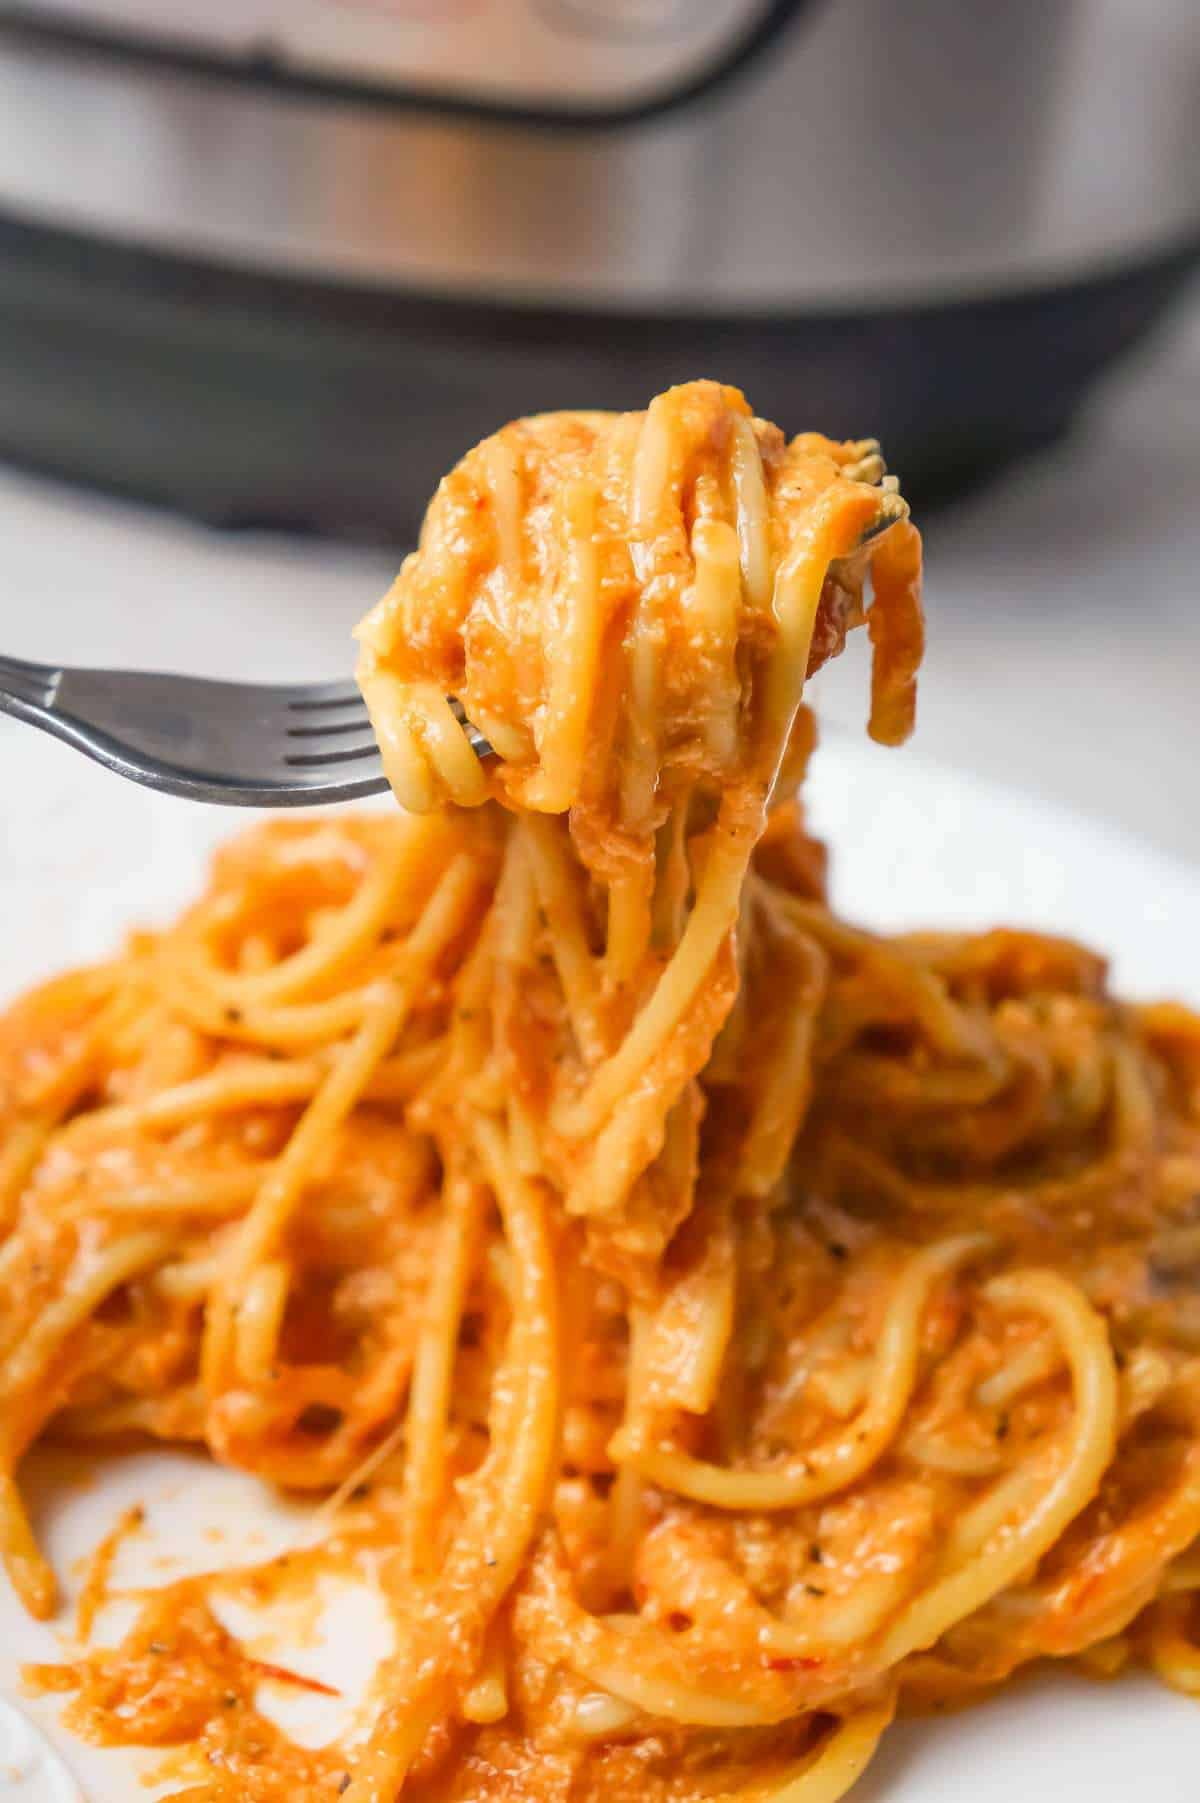 Instant Pot Spaghetti with Ricotta is an easy weeknight dinner recipe made with canned marinara sauce and loaded with mozzarella, cheddar and ricotta cheese.